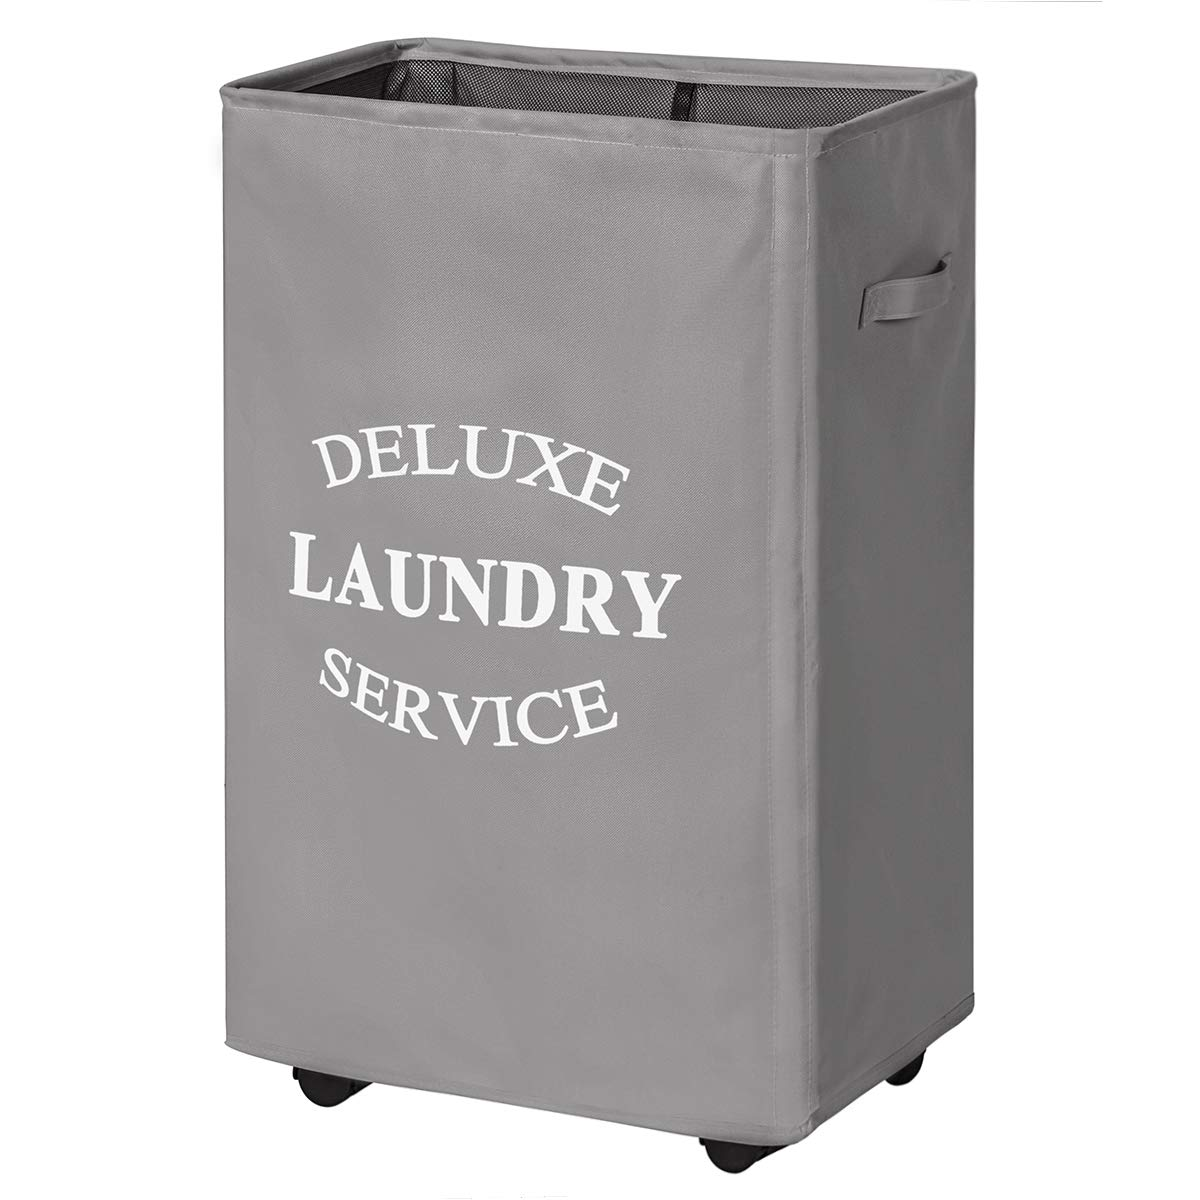 Chrislley 90L Rolling Laundry Hamper with Wheels Large Basket for Laundry Collapsible Clothes Hamper on Wheels (Grey) by Chrislley